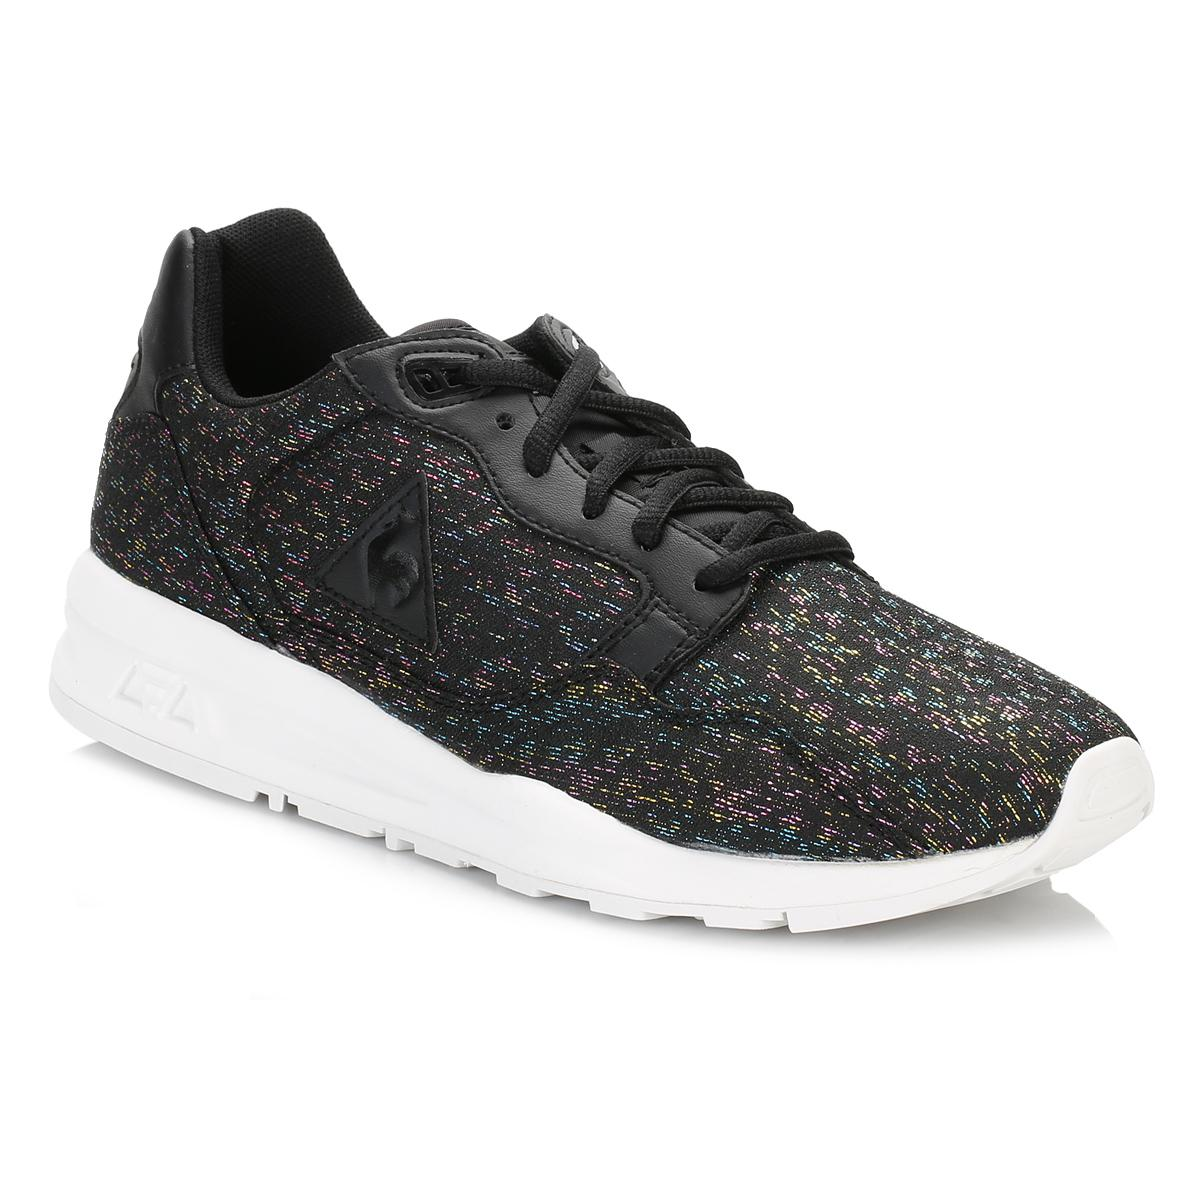 Le Coq Sportif Womens LCS R900 W Rainbow Jacquard Trainers women's Shoes (Trainers) in Extremely Cheap Price Online For Sale Sale Wholesale Price SjH3Nbq9